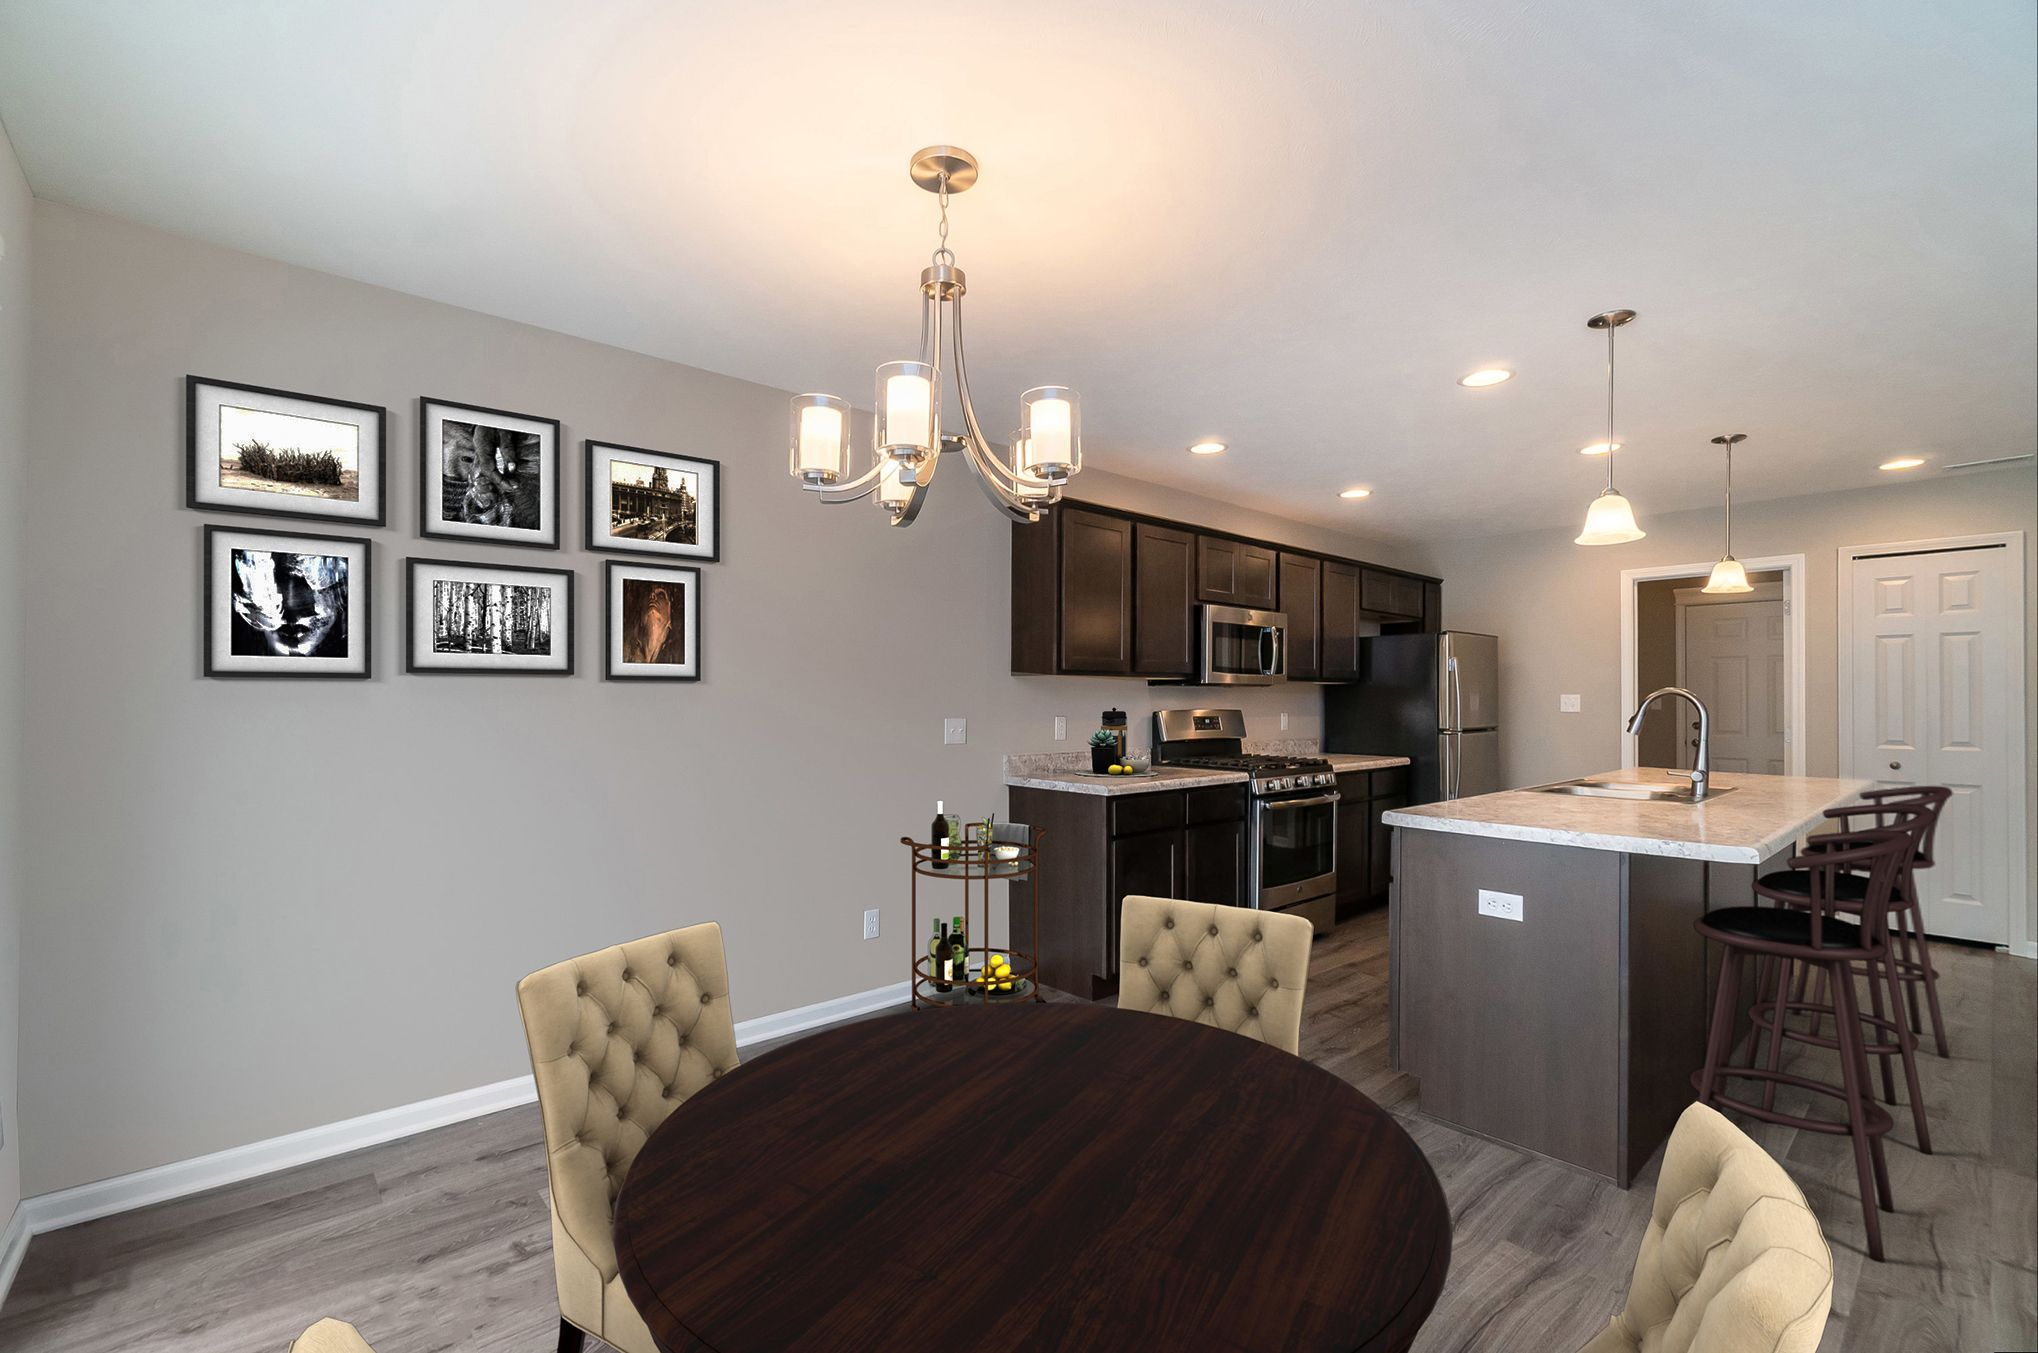 Kitchen featured in the Aria By Olthof Homes in Indianapolis, IN